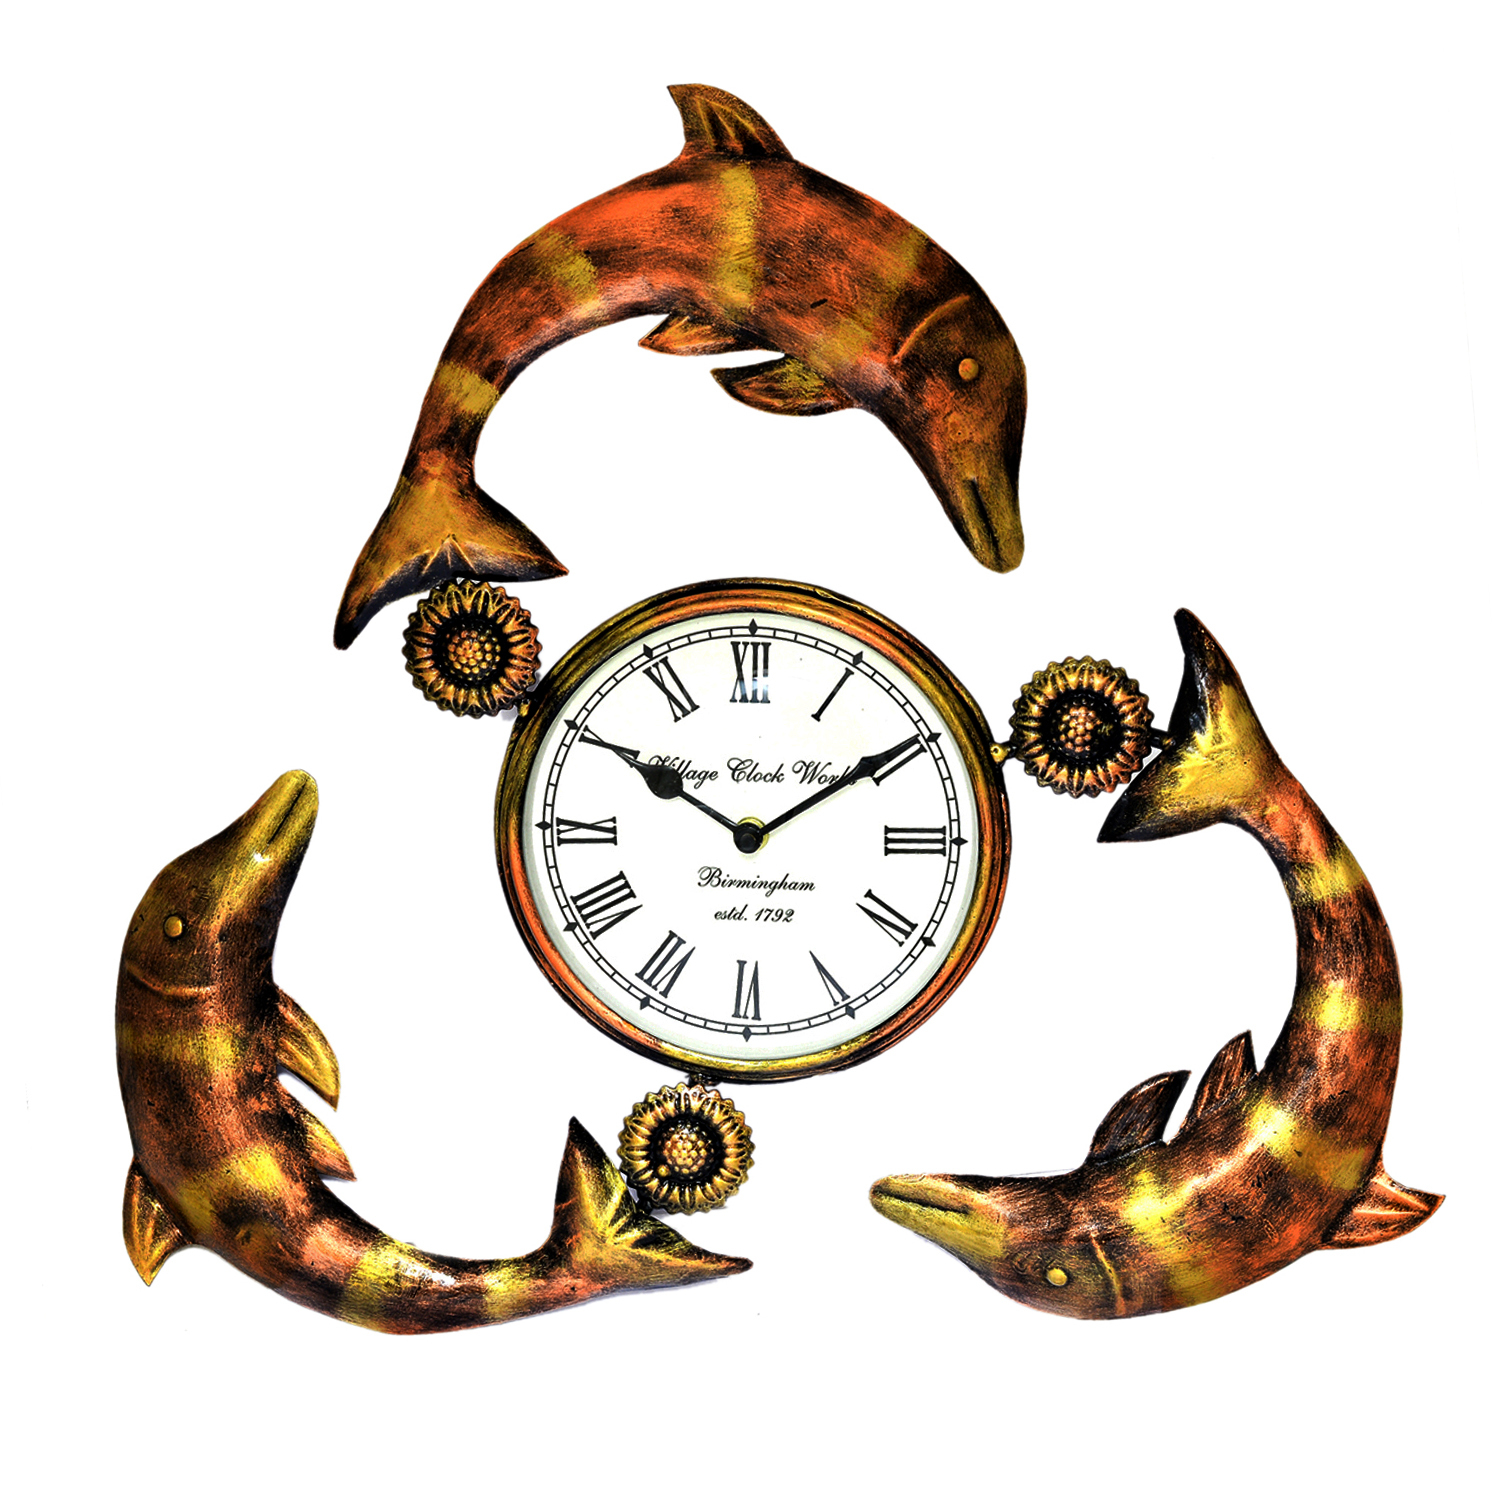 Decorative Wall Clock/Living Room of Fish Clock. Handmade iron Hand painted